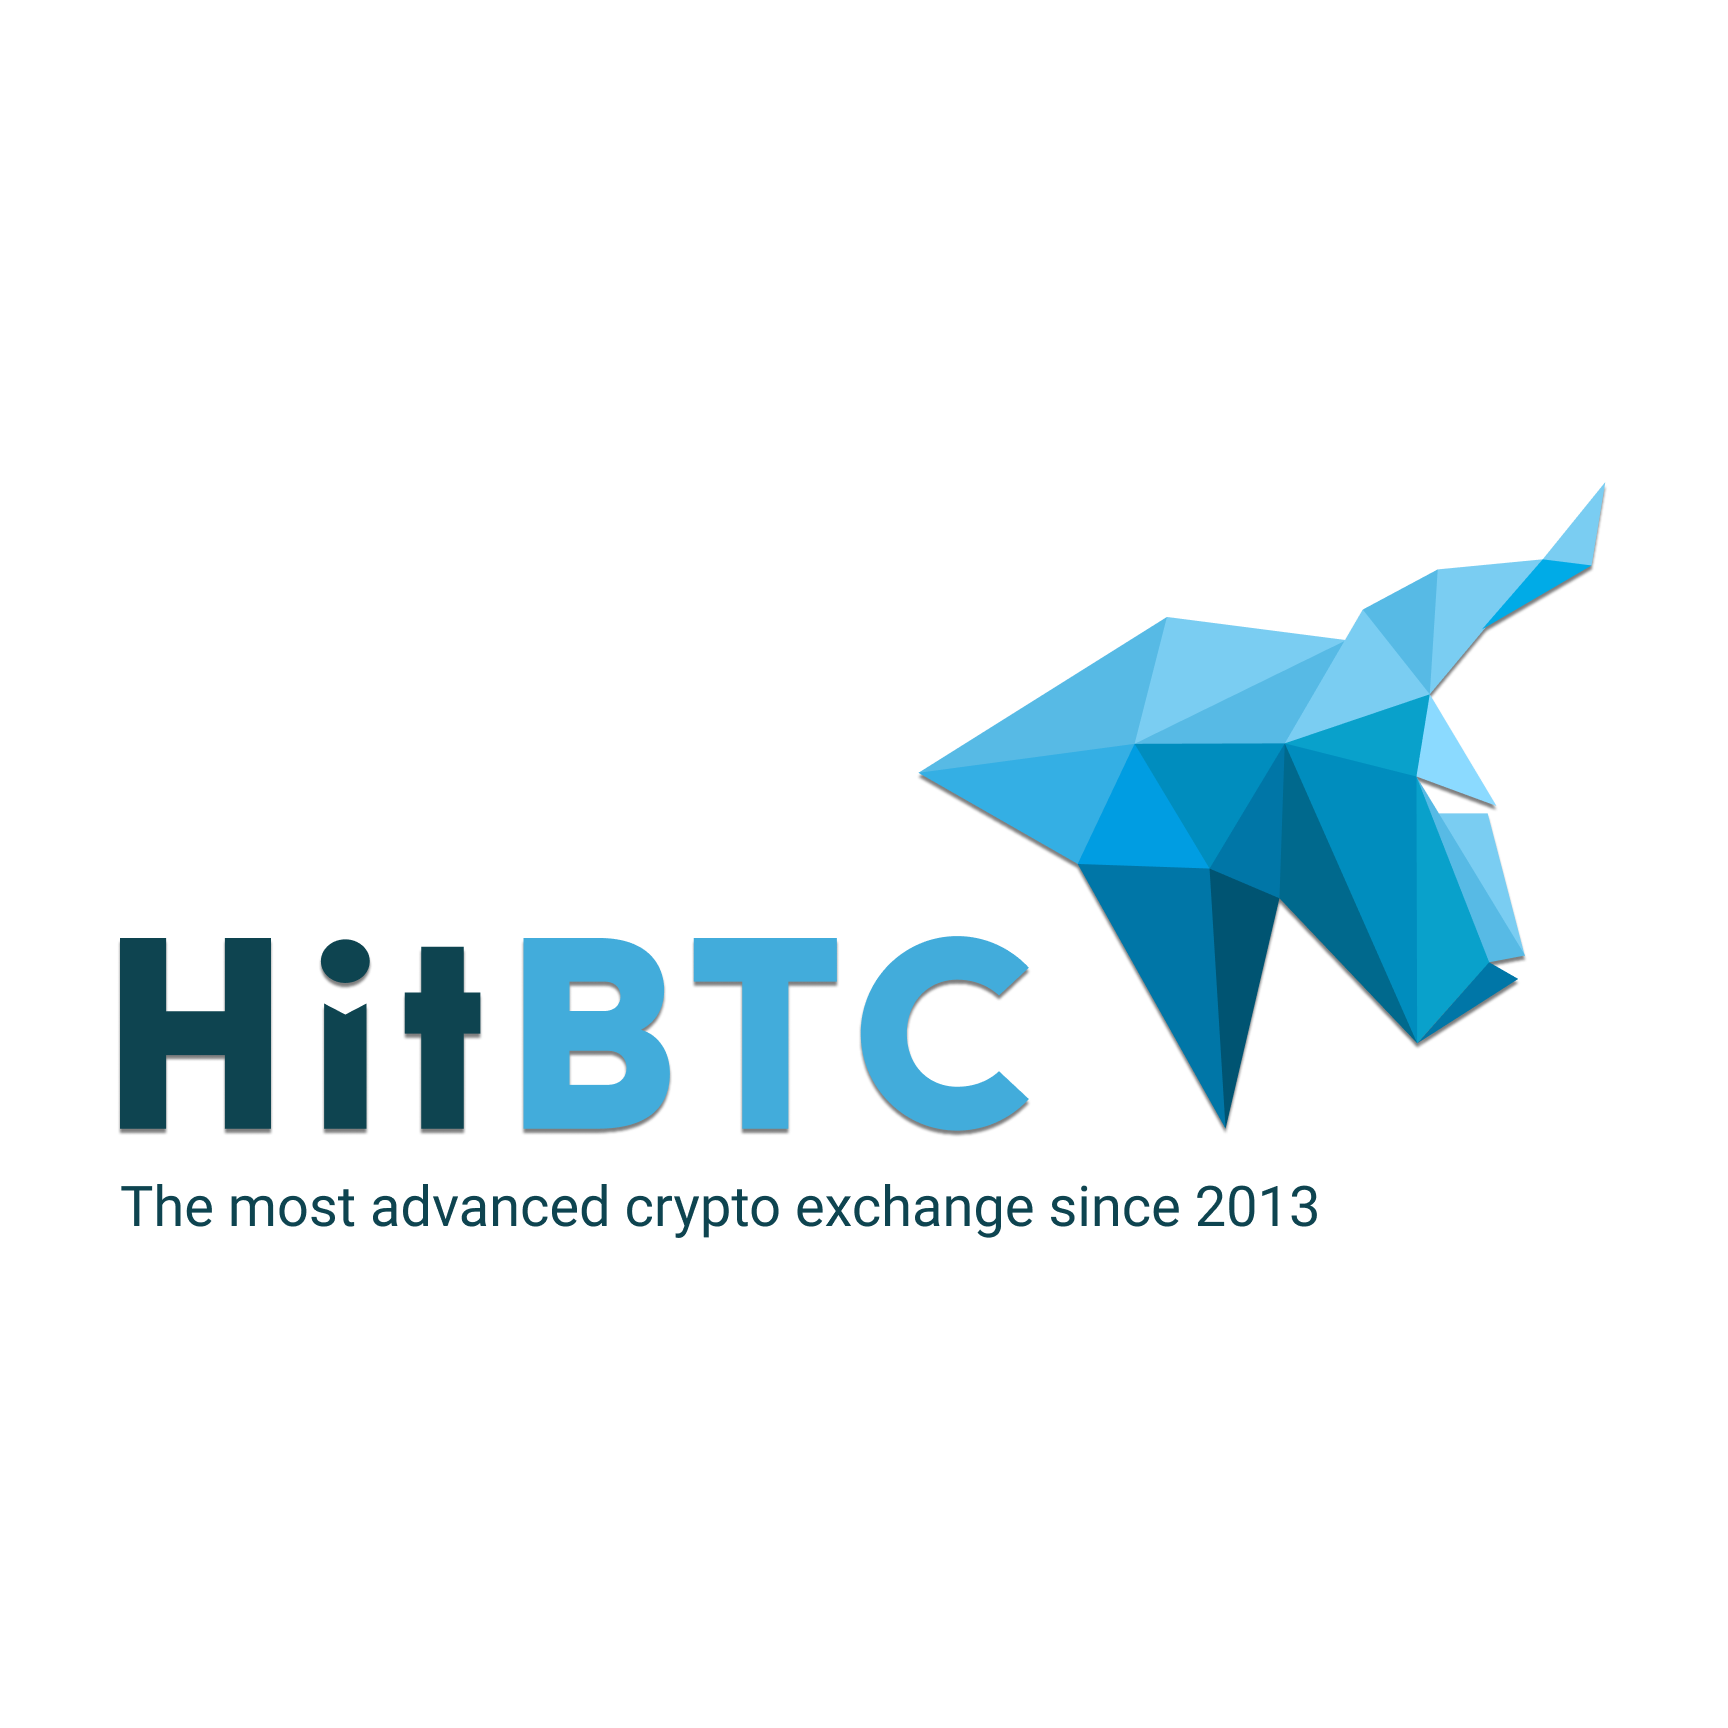 HitBTC logo on black